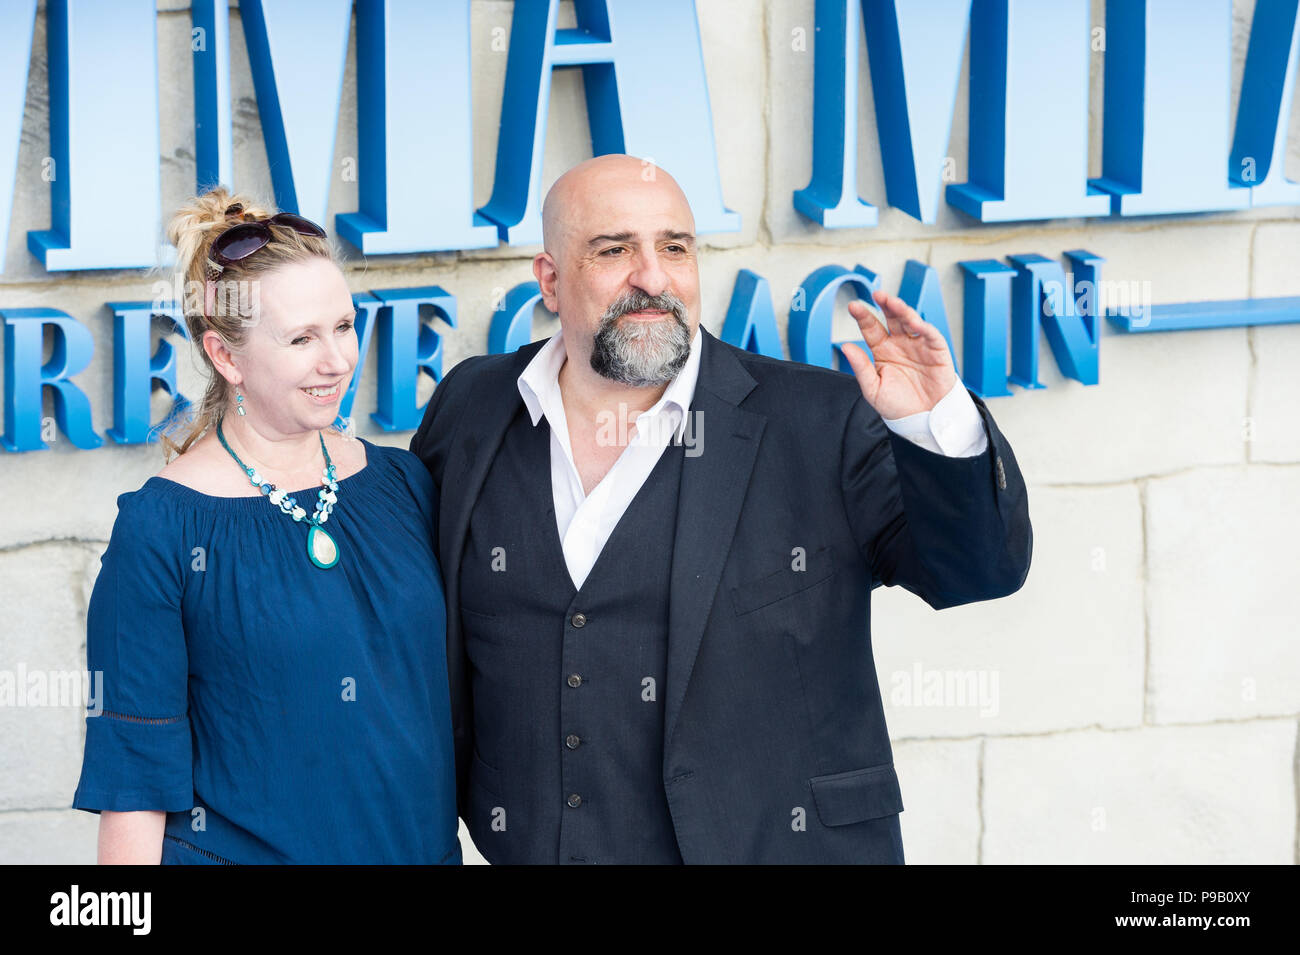 London, UK. 16th July 2018. Omid Djalili (R) arrives for the world film premiere of 'Mamma Mia! Here We Go Again' at Eventim Apollo, Hammersmith in London. Credit: Wiktor Szymanowicz/Alamy Live News - Stock Image